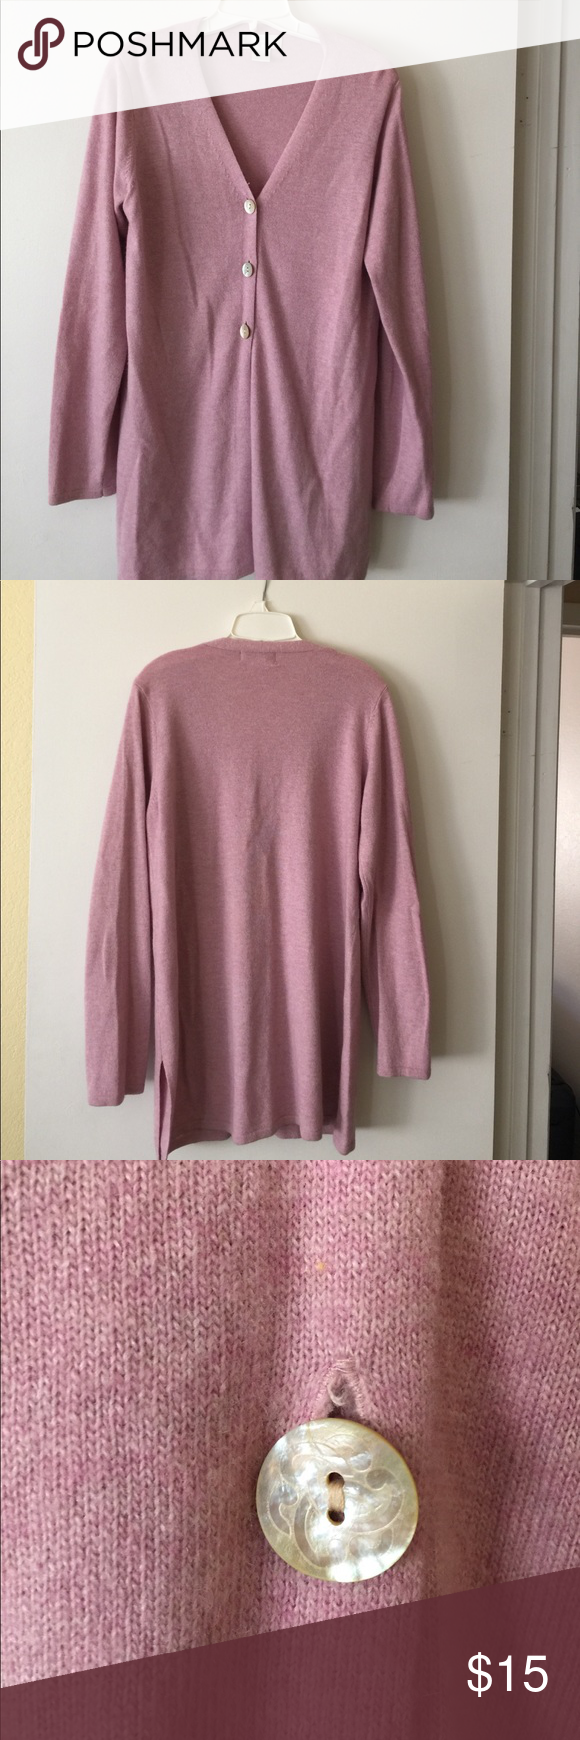 Pink Sweater | Soft surroundings, Customer support and Delivery